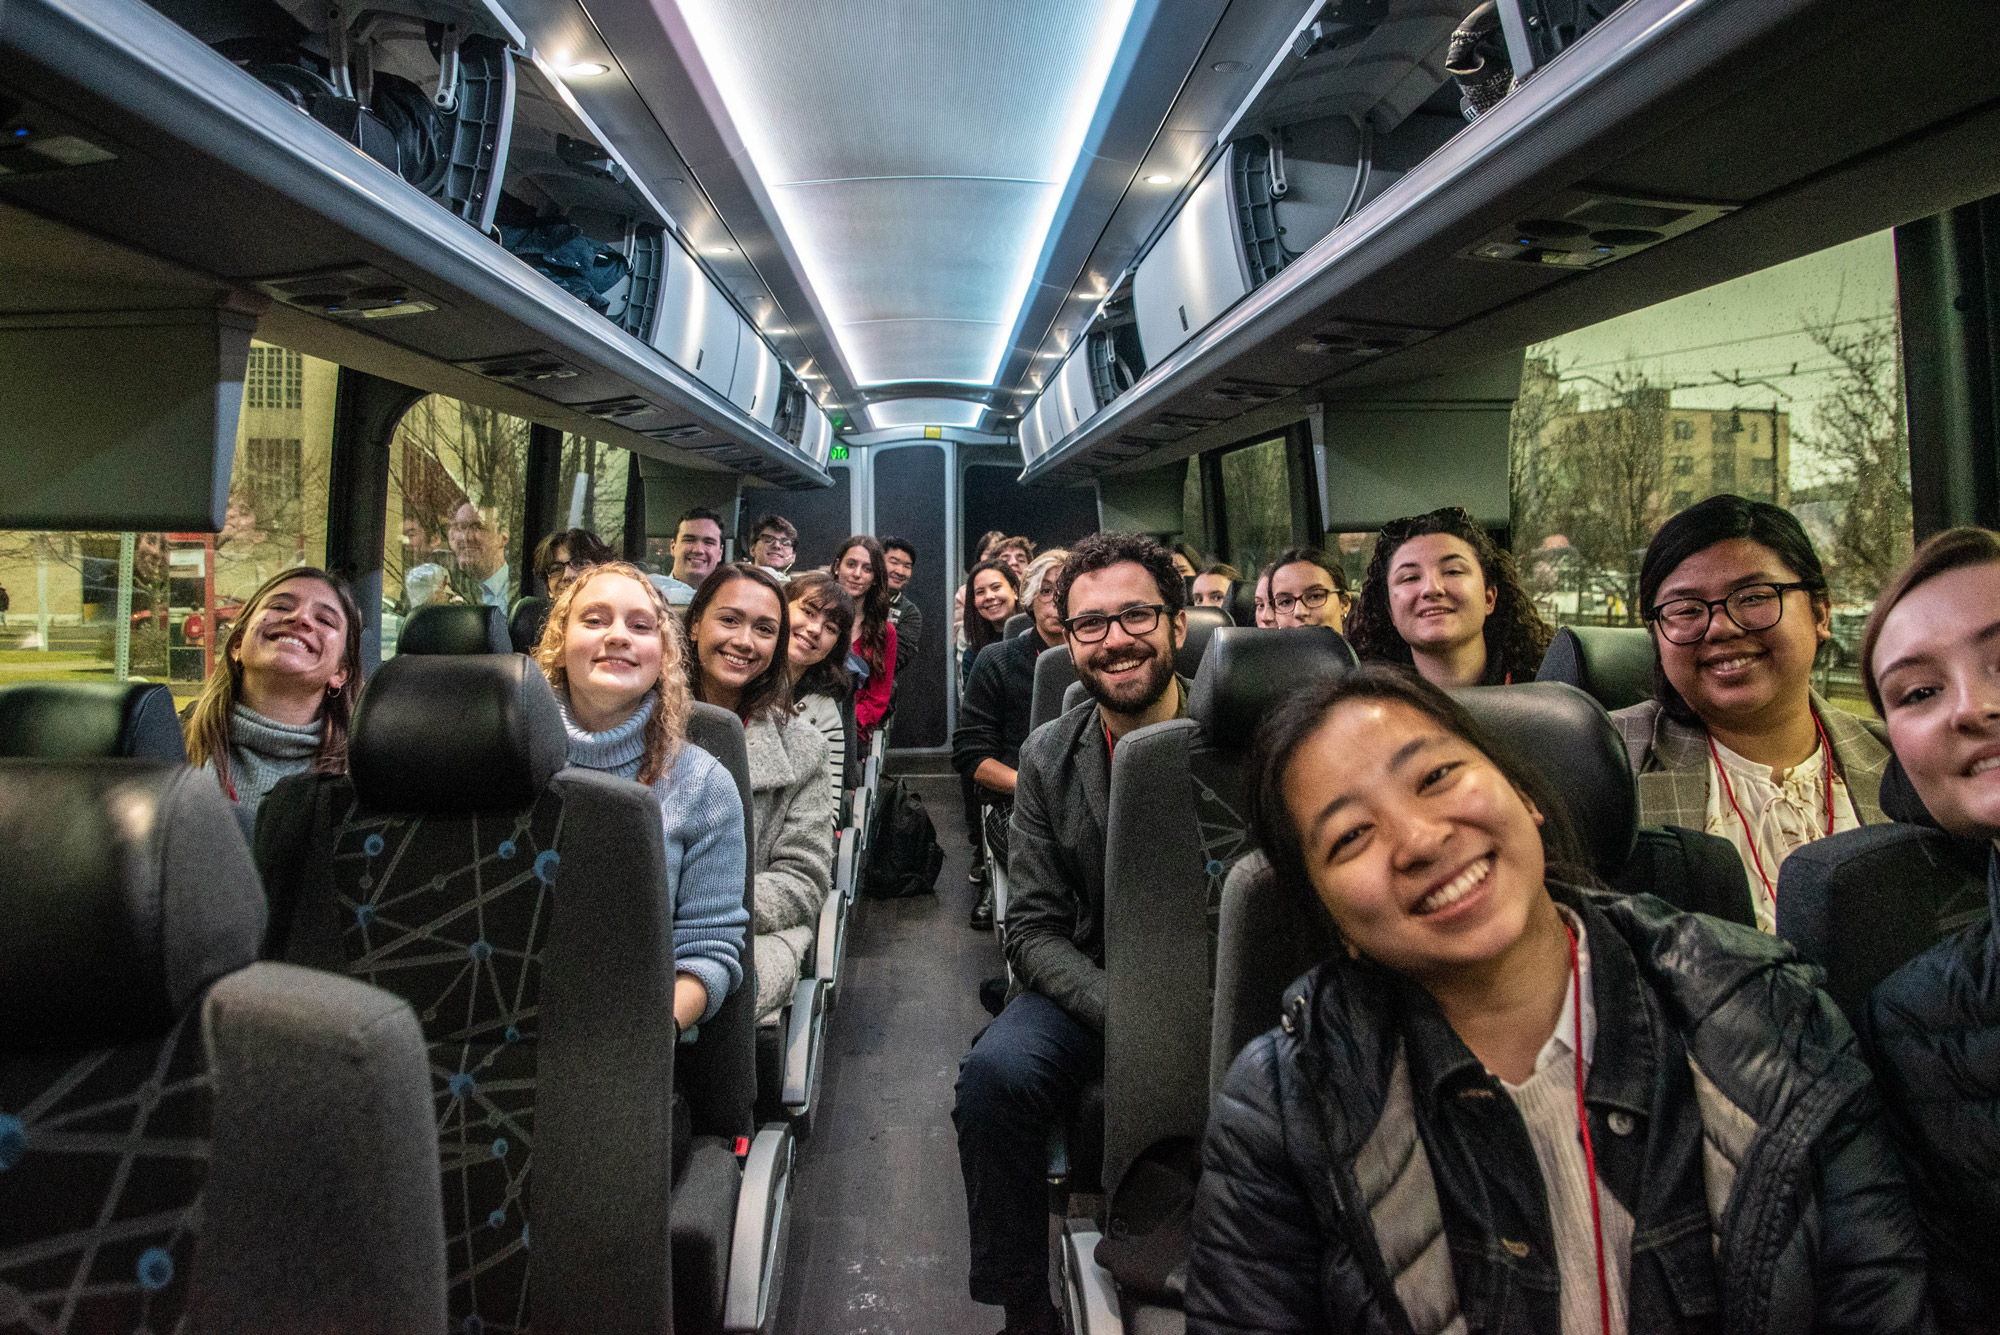 A busload of students from the College of Communication on their way to report on the New Hampshire primary.